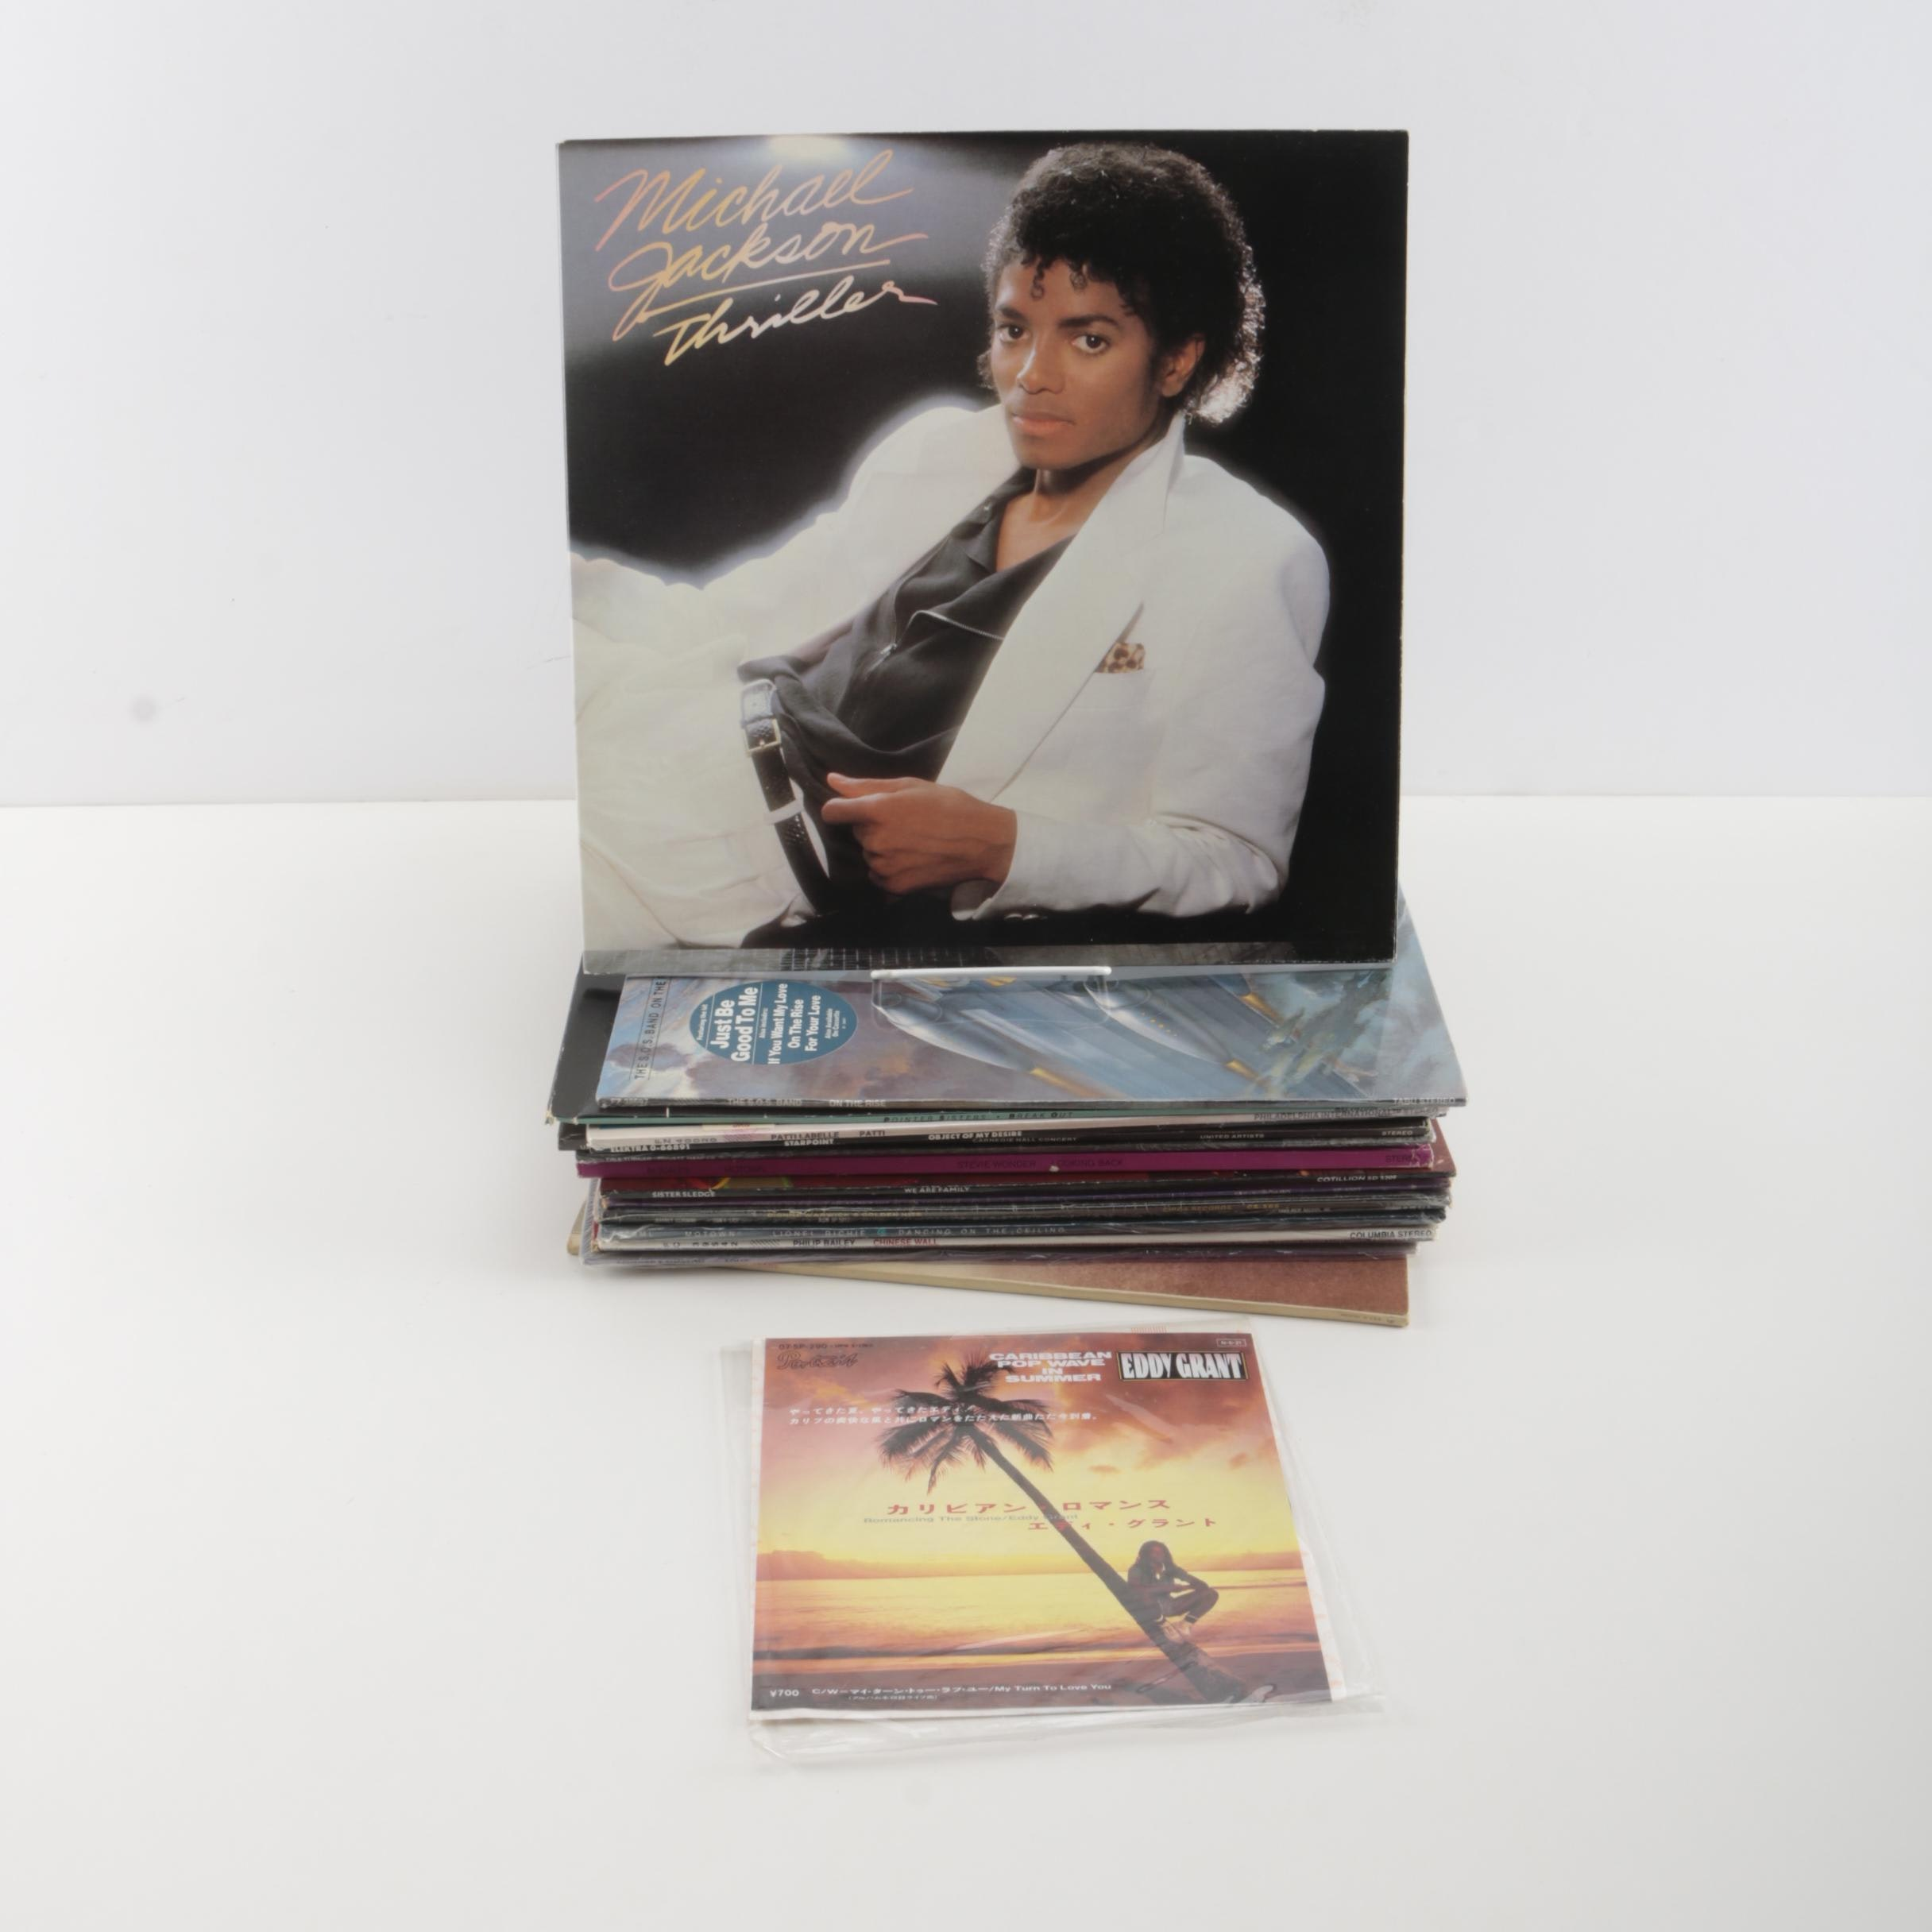 Soul, R&B Records Featuring Michael Jackson, Smokey Robinson, Tina Turner